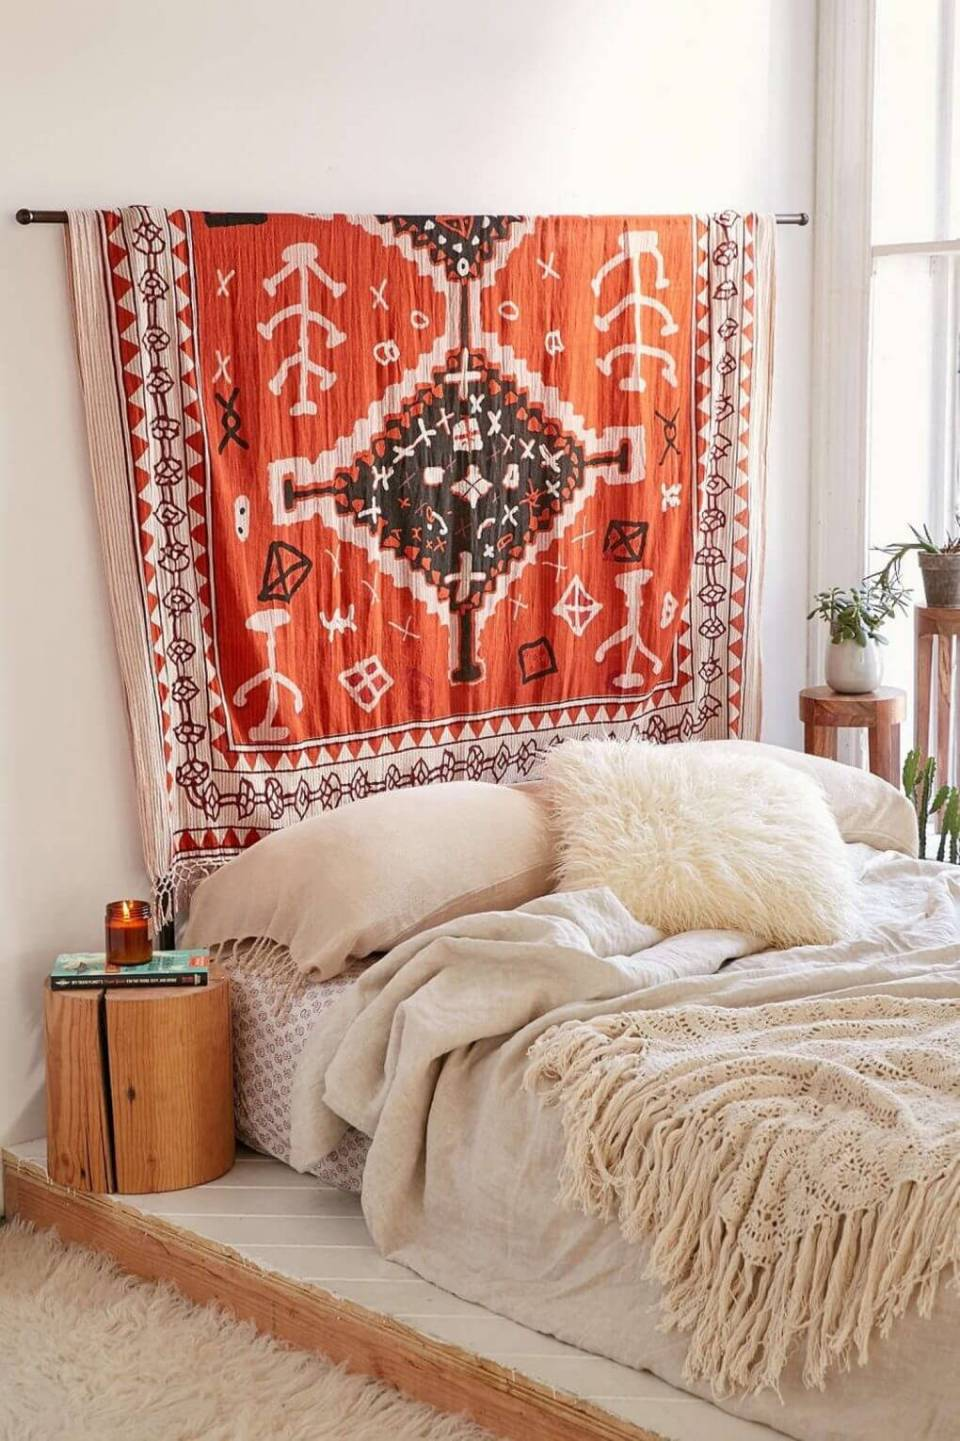 Minimal Bedroom With Leafy Decor and a Patterned Rug Above the Bed   Bohemian Chic Interior Design Ideas   FarmFoodFamily.com